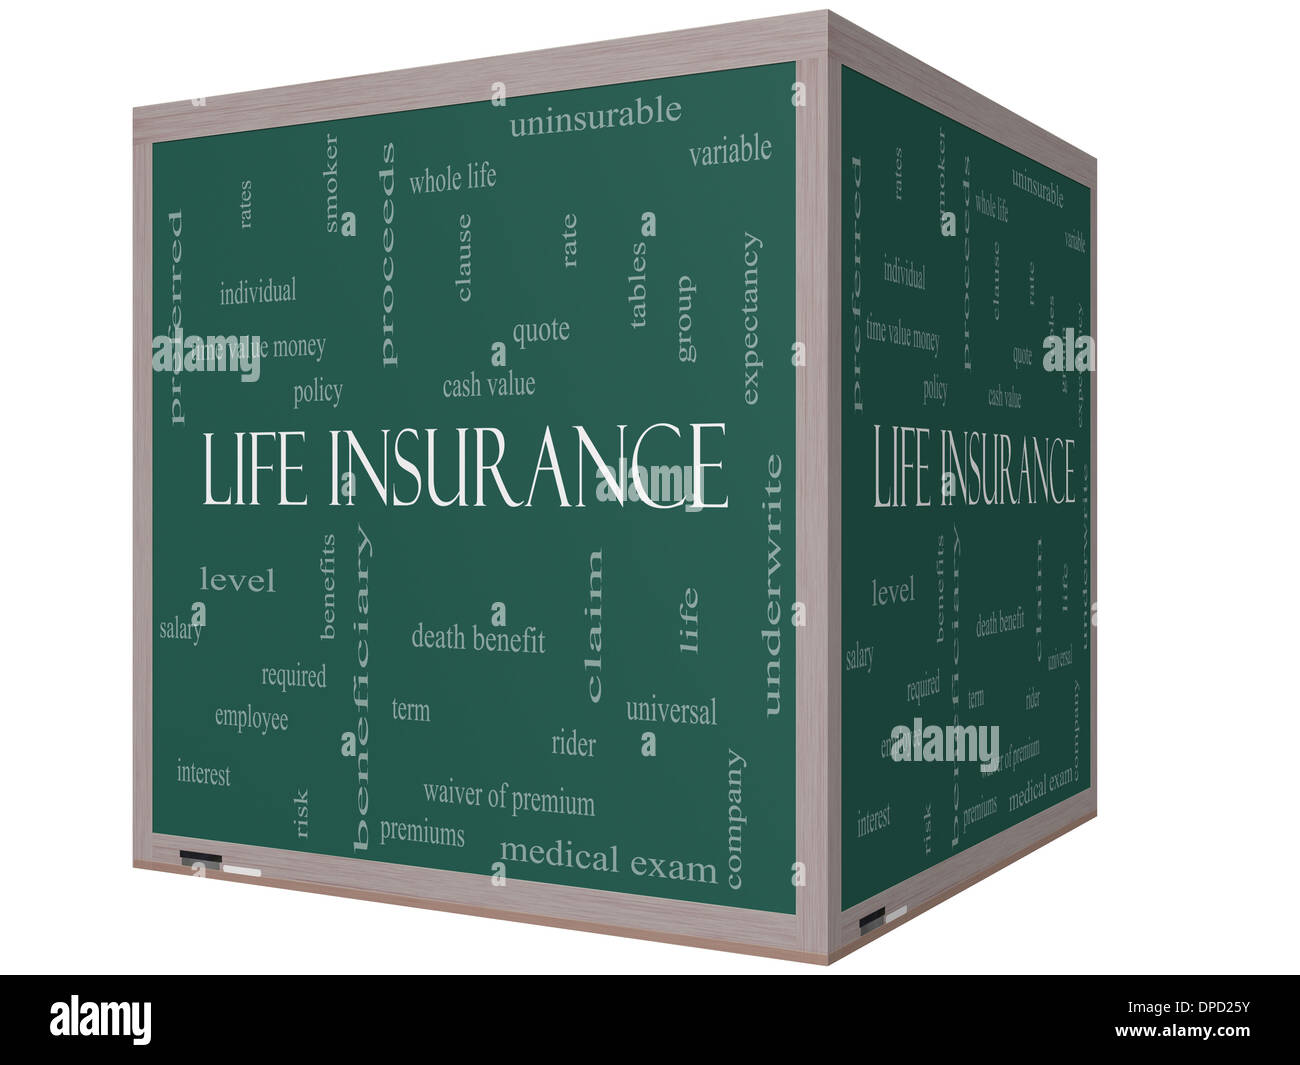 Free Whole Life Insurance Quotes Life Insurance Word Cloud Concept On A 3D Cube Blackboard With